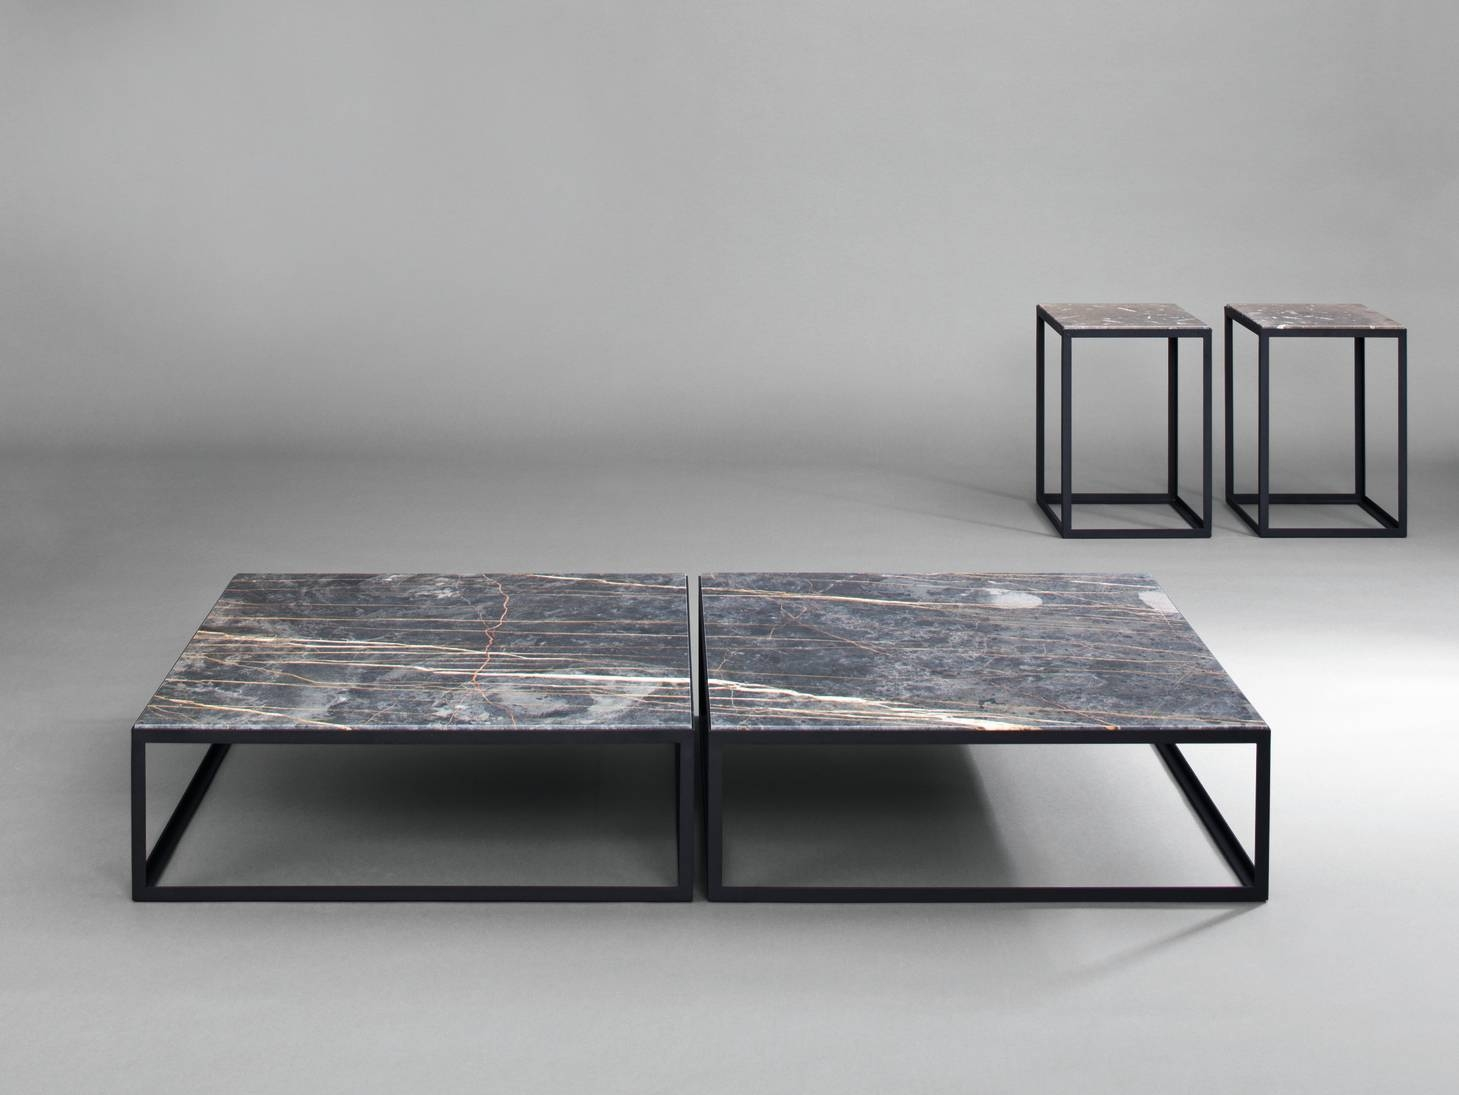 Low Black Square Coffee Table | Coffee Tables Decoration pertaining to Square Low Coffee Tables (Image 10 of 20)